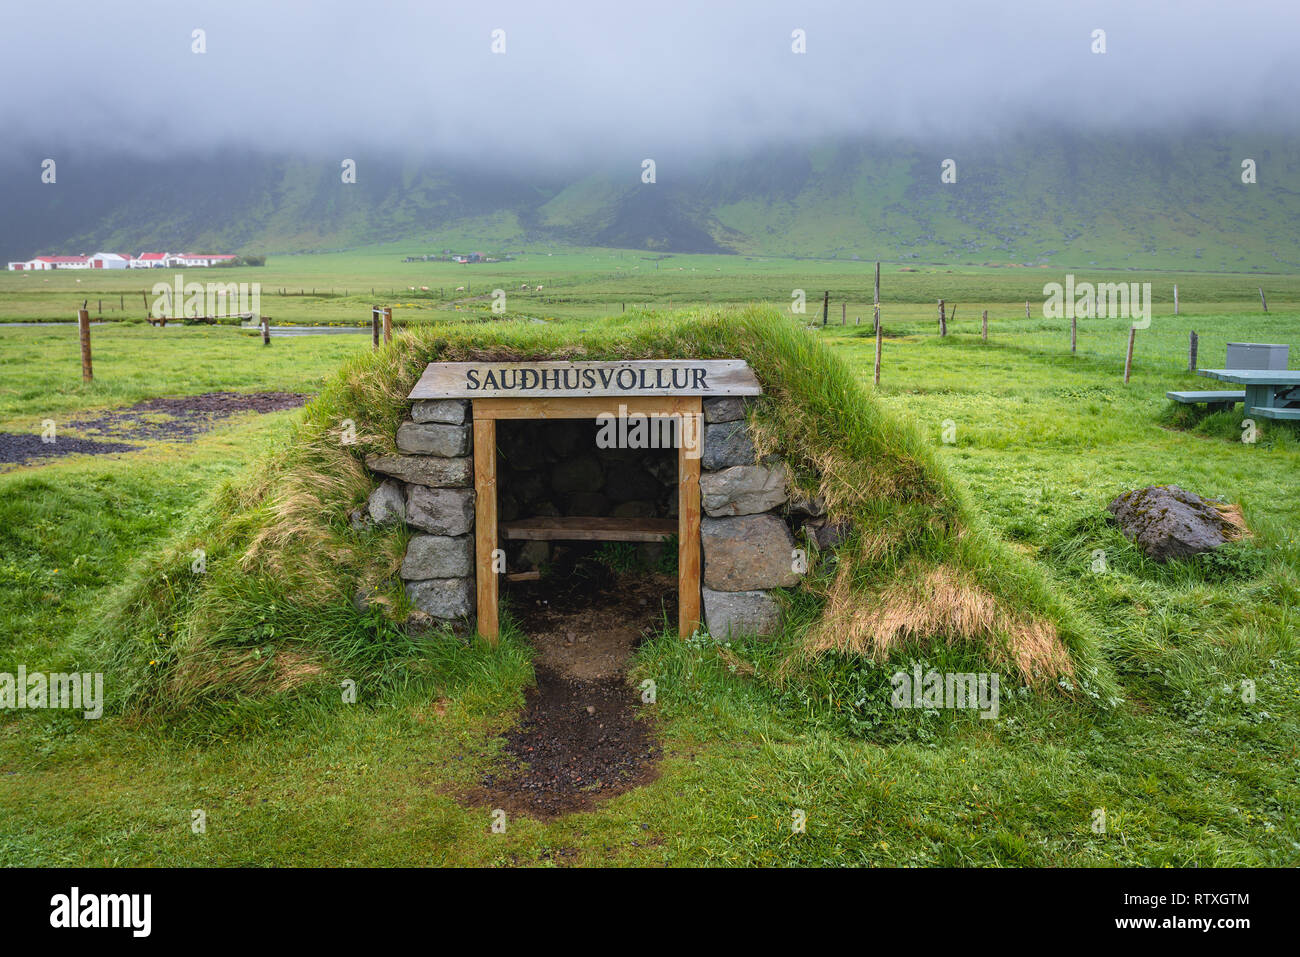 Saudhusvollur shed in South part of Iceland - Stock Image